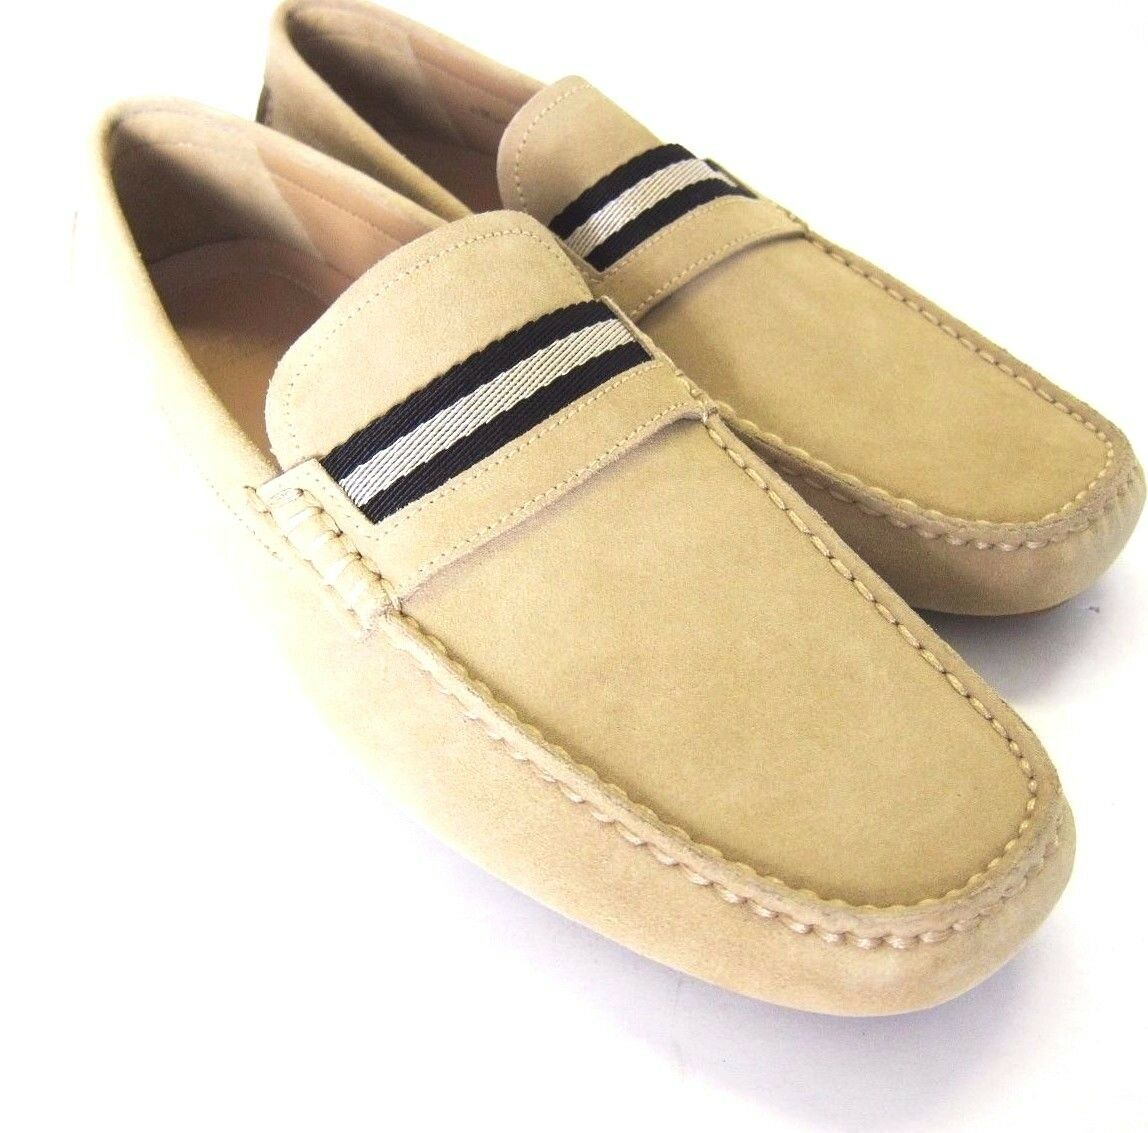 S-1177119 New Bally Wabler Sabbia Light Tan Suede Drivers Size US 11D Marked 10E